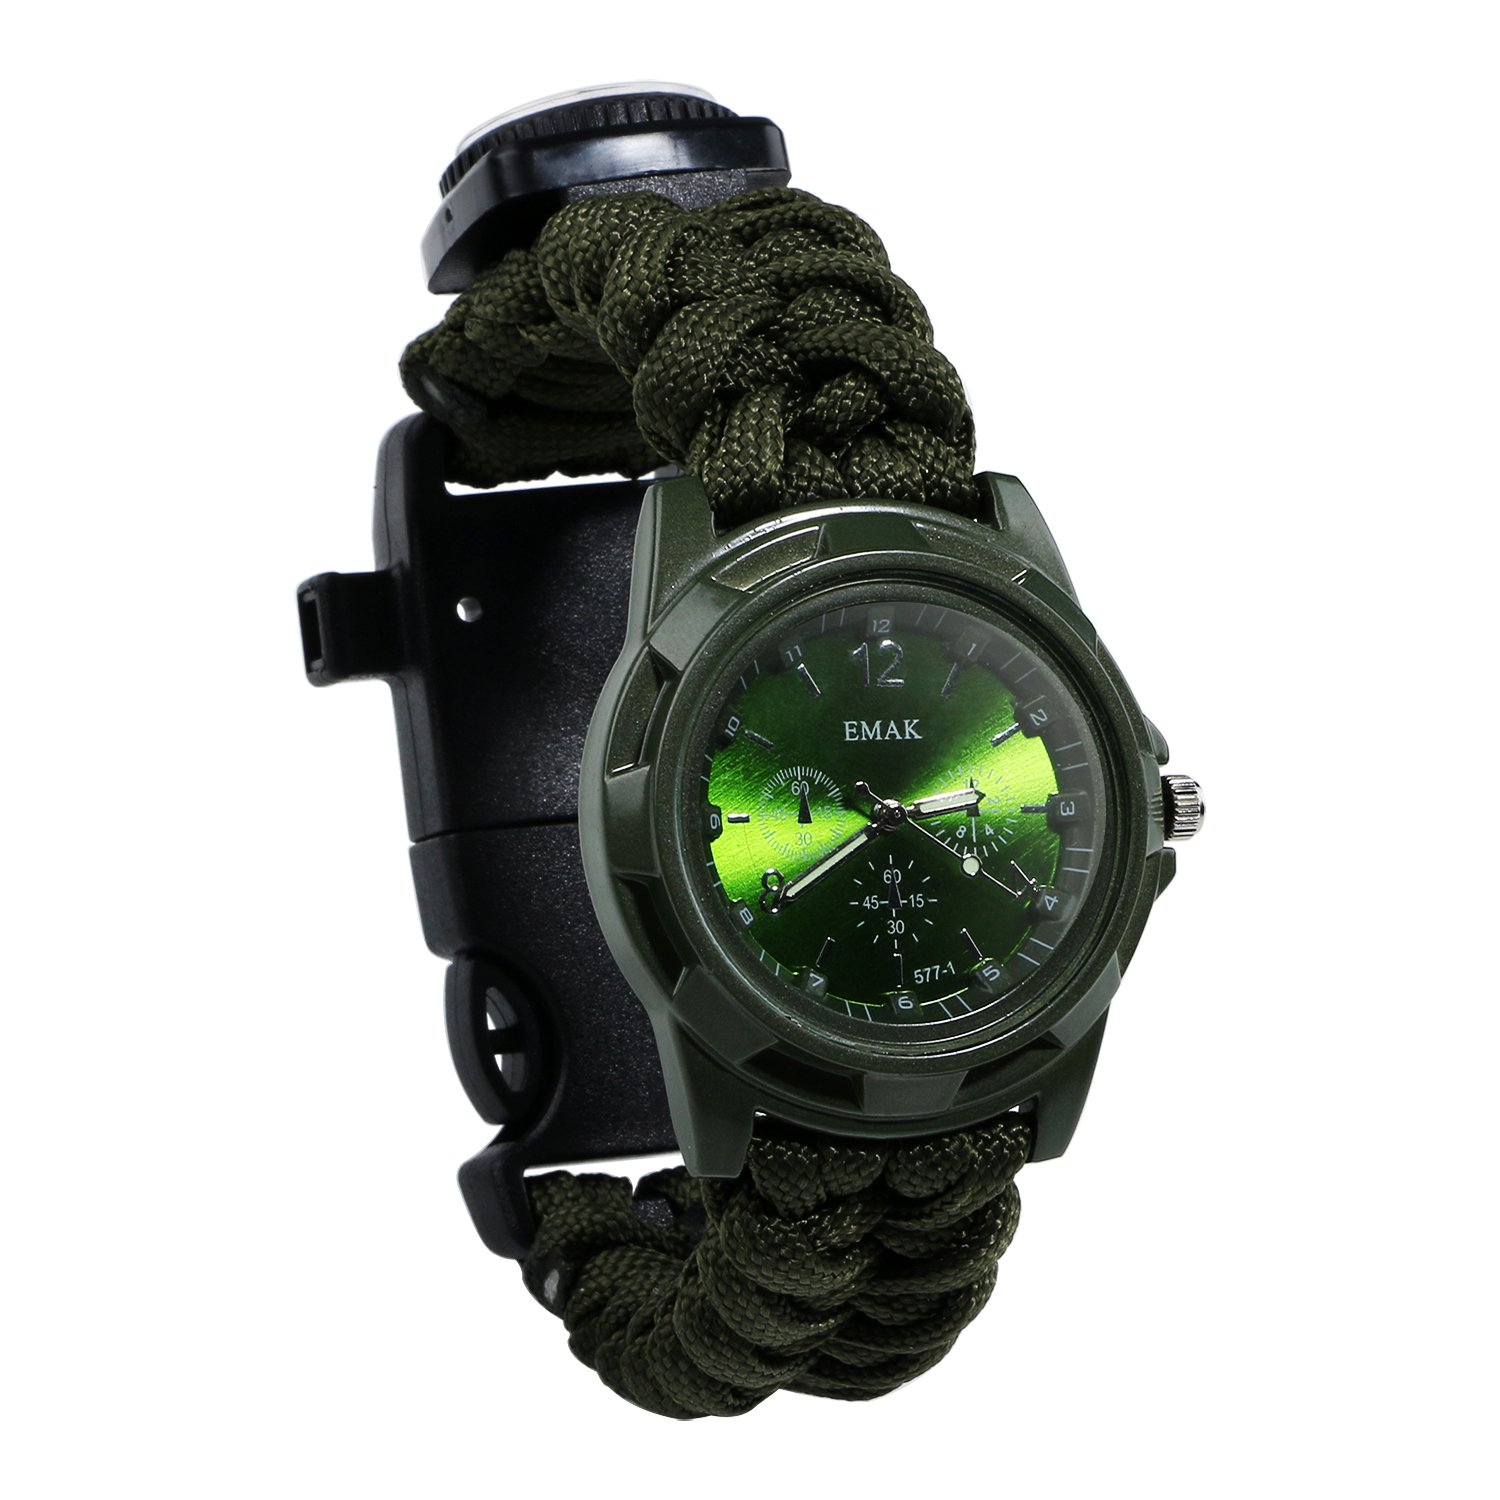 SevenMye Paracord Survival Bracelet Compass,Whistle,Fire Starter,Survival Gear Kit with Embedded Compass,Hiking Gear